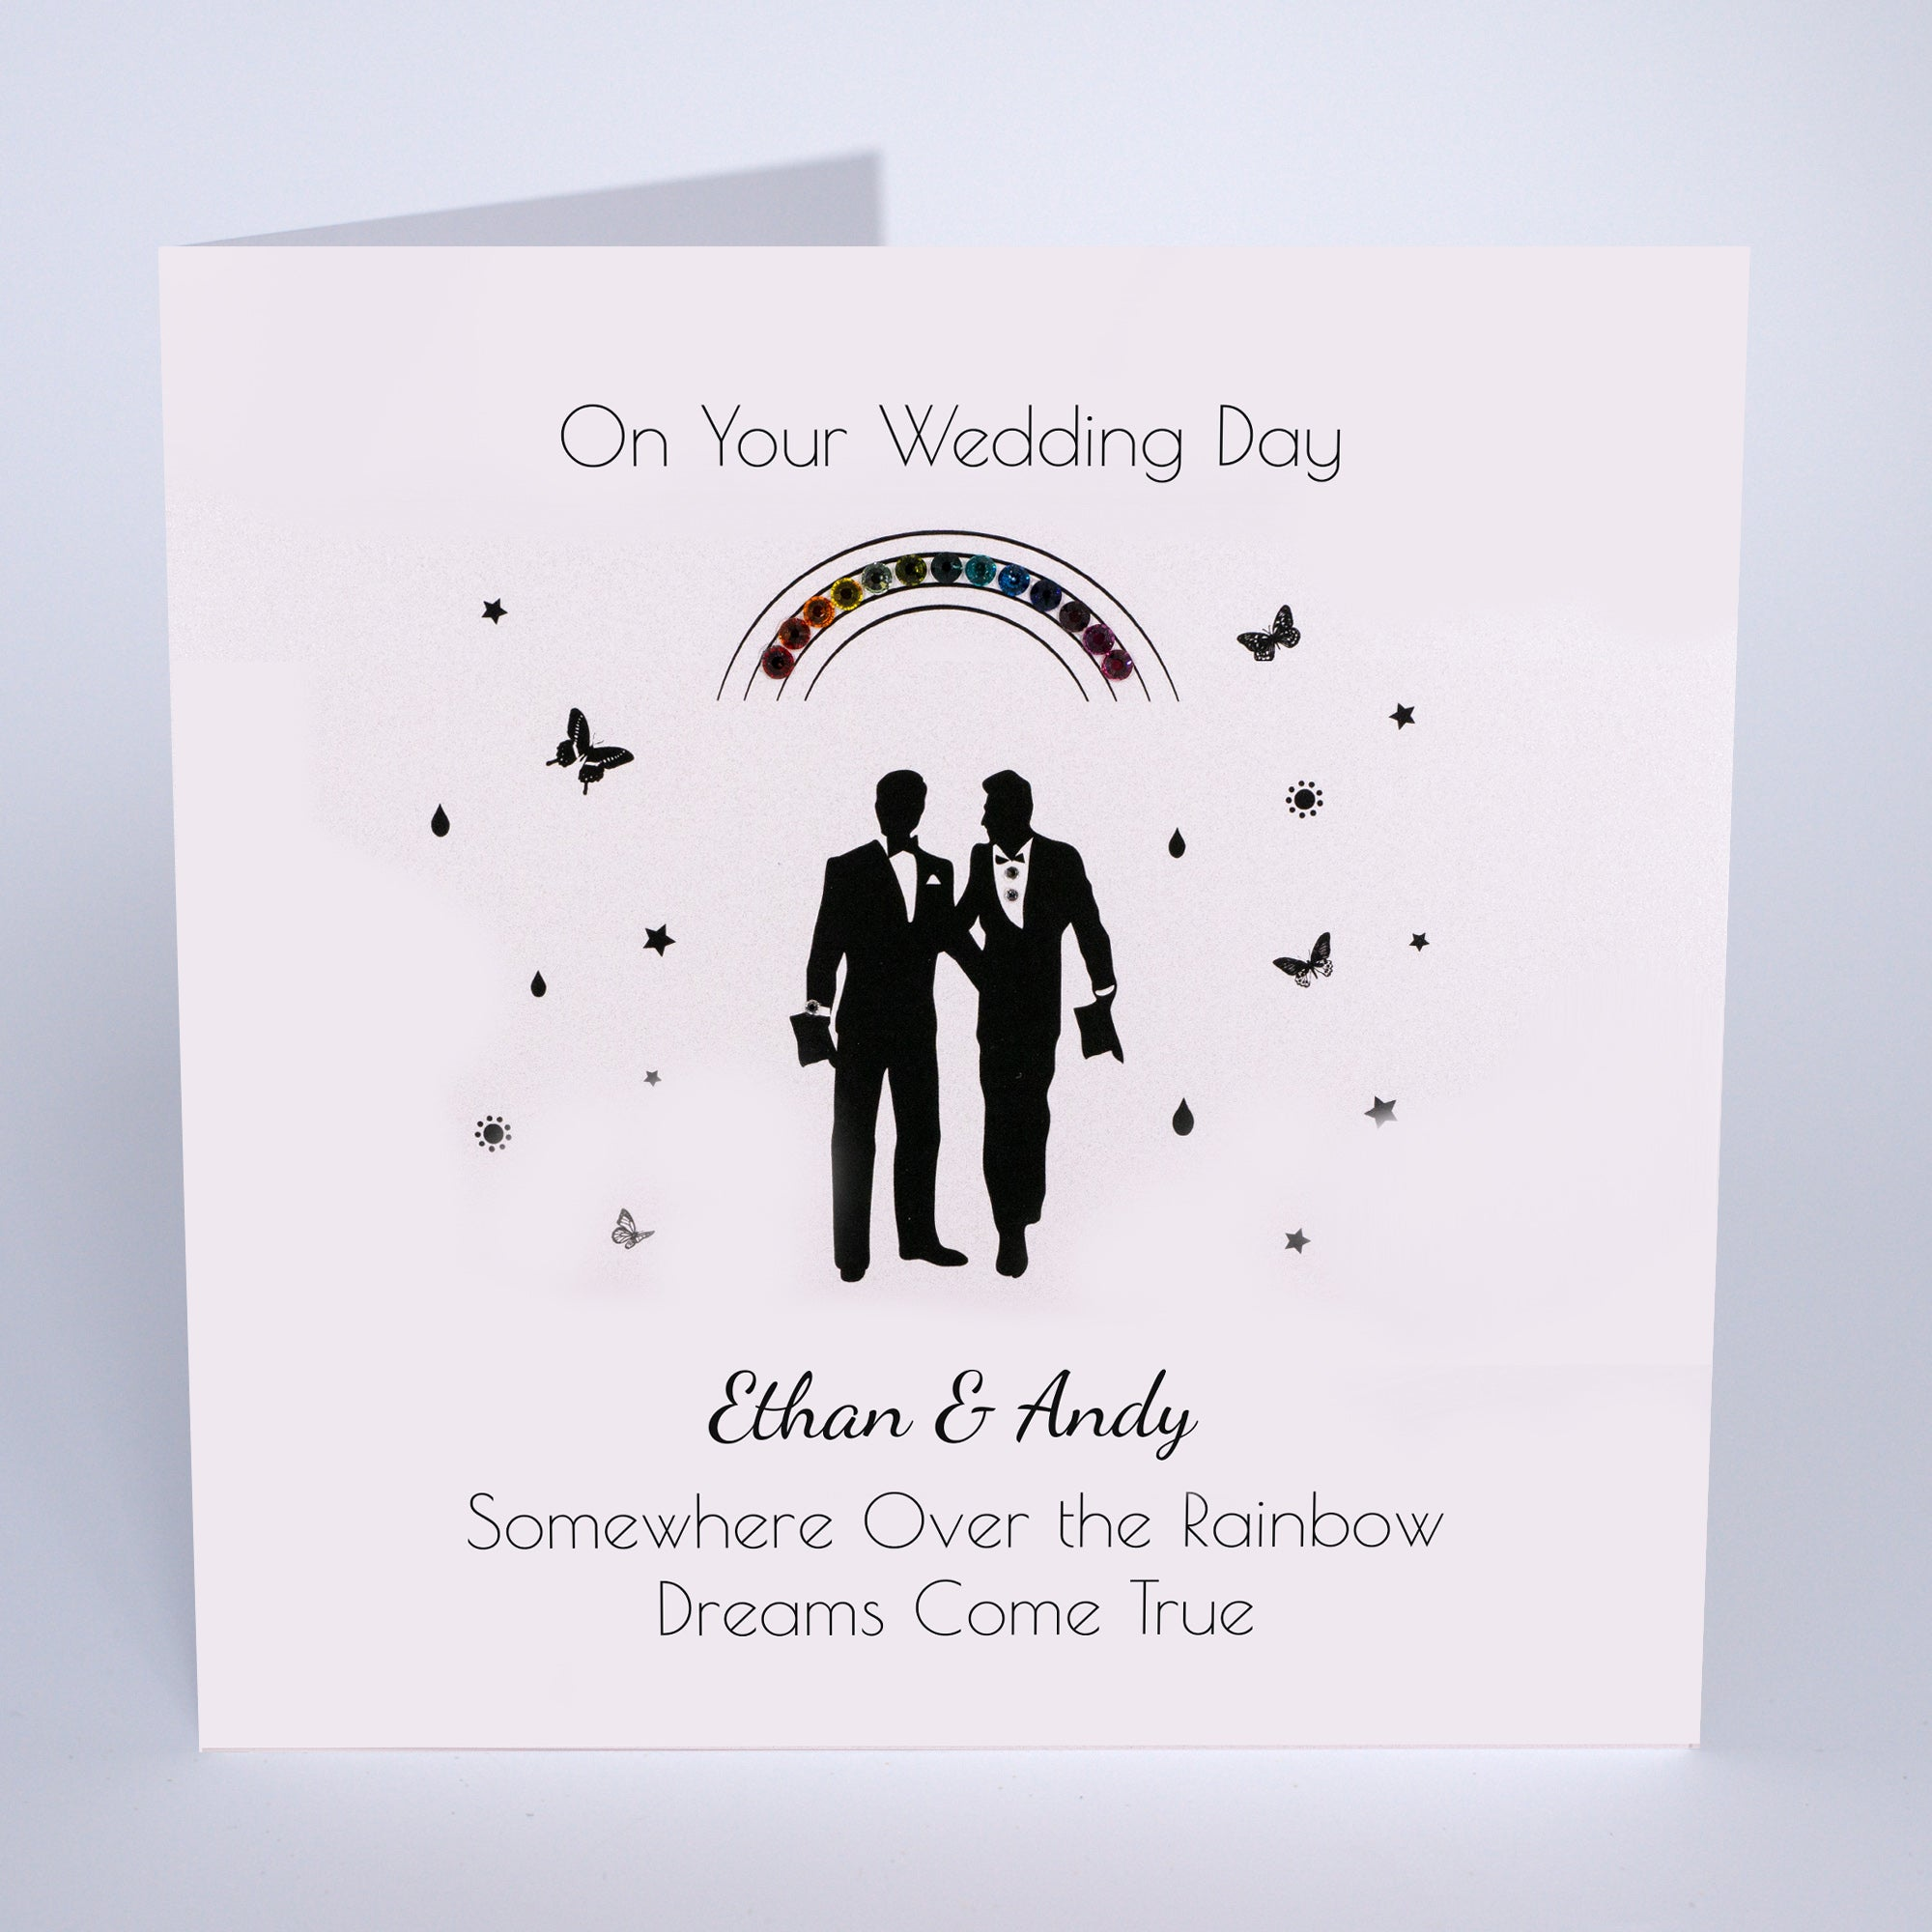 On Your Wedding Day - Somewhere Over The Rainbow